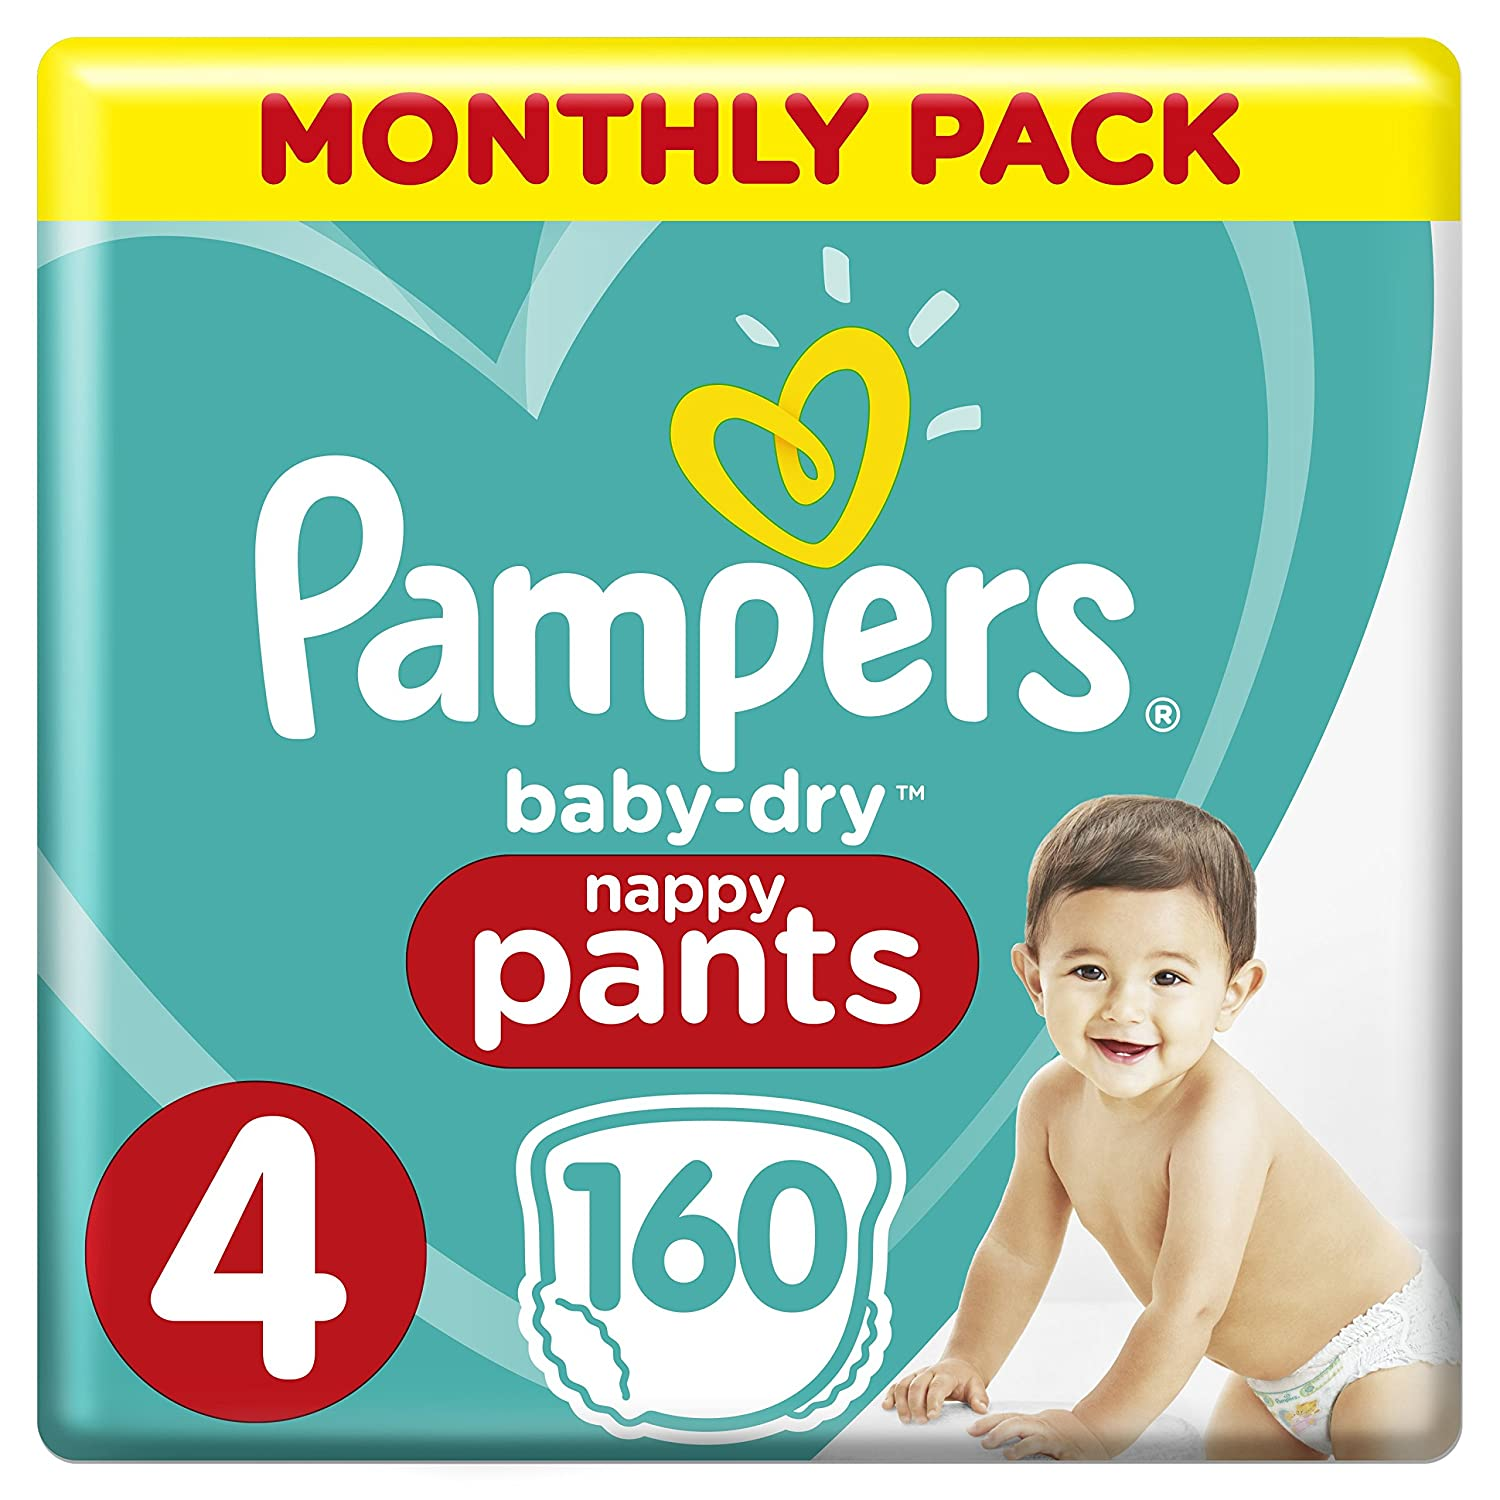 Pampers Baby-Dry Size 4, 160 Nappy Pants,(8-14 kg), Easy-On for Up to 12 Hours of Breathable Dryness, Monthly Pack - Packaging May Vary Procter & Gamble 81647146